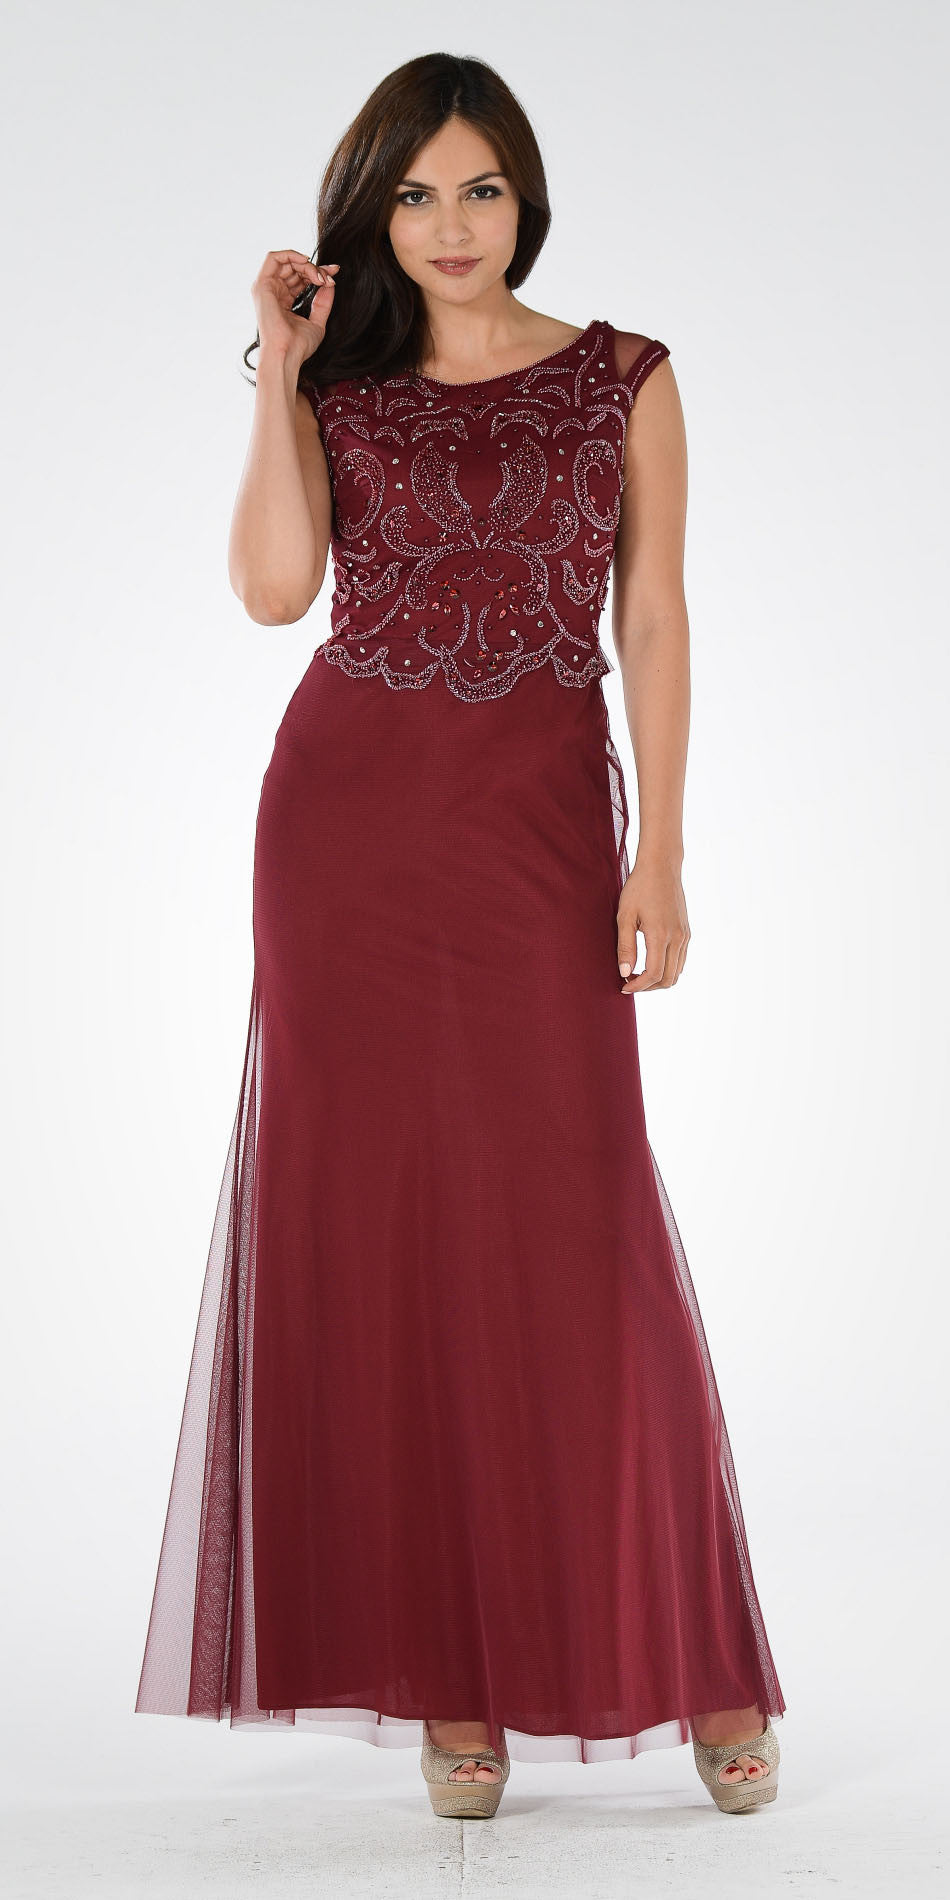 4482fca380b Burgundy Beaded Bodice Fit and Flare Mother of the Bride Dress Long -  DiscountDressShop ...